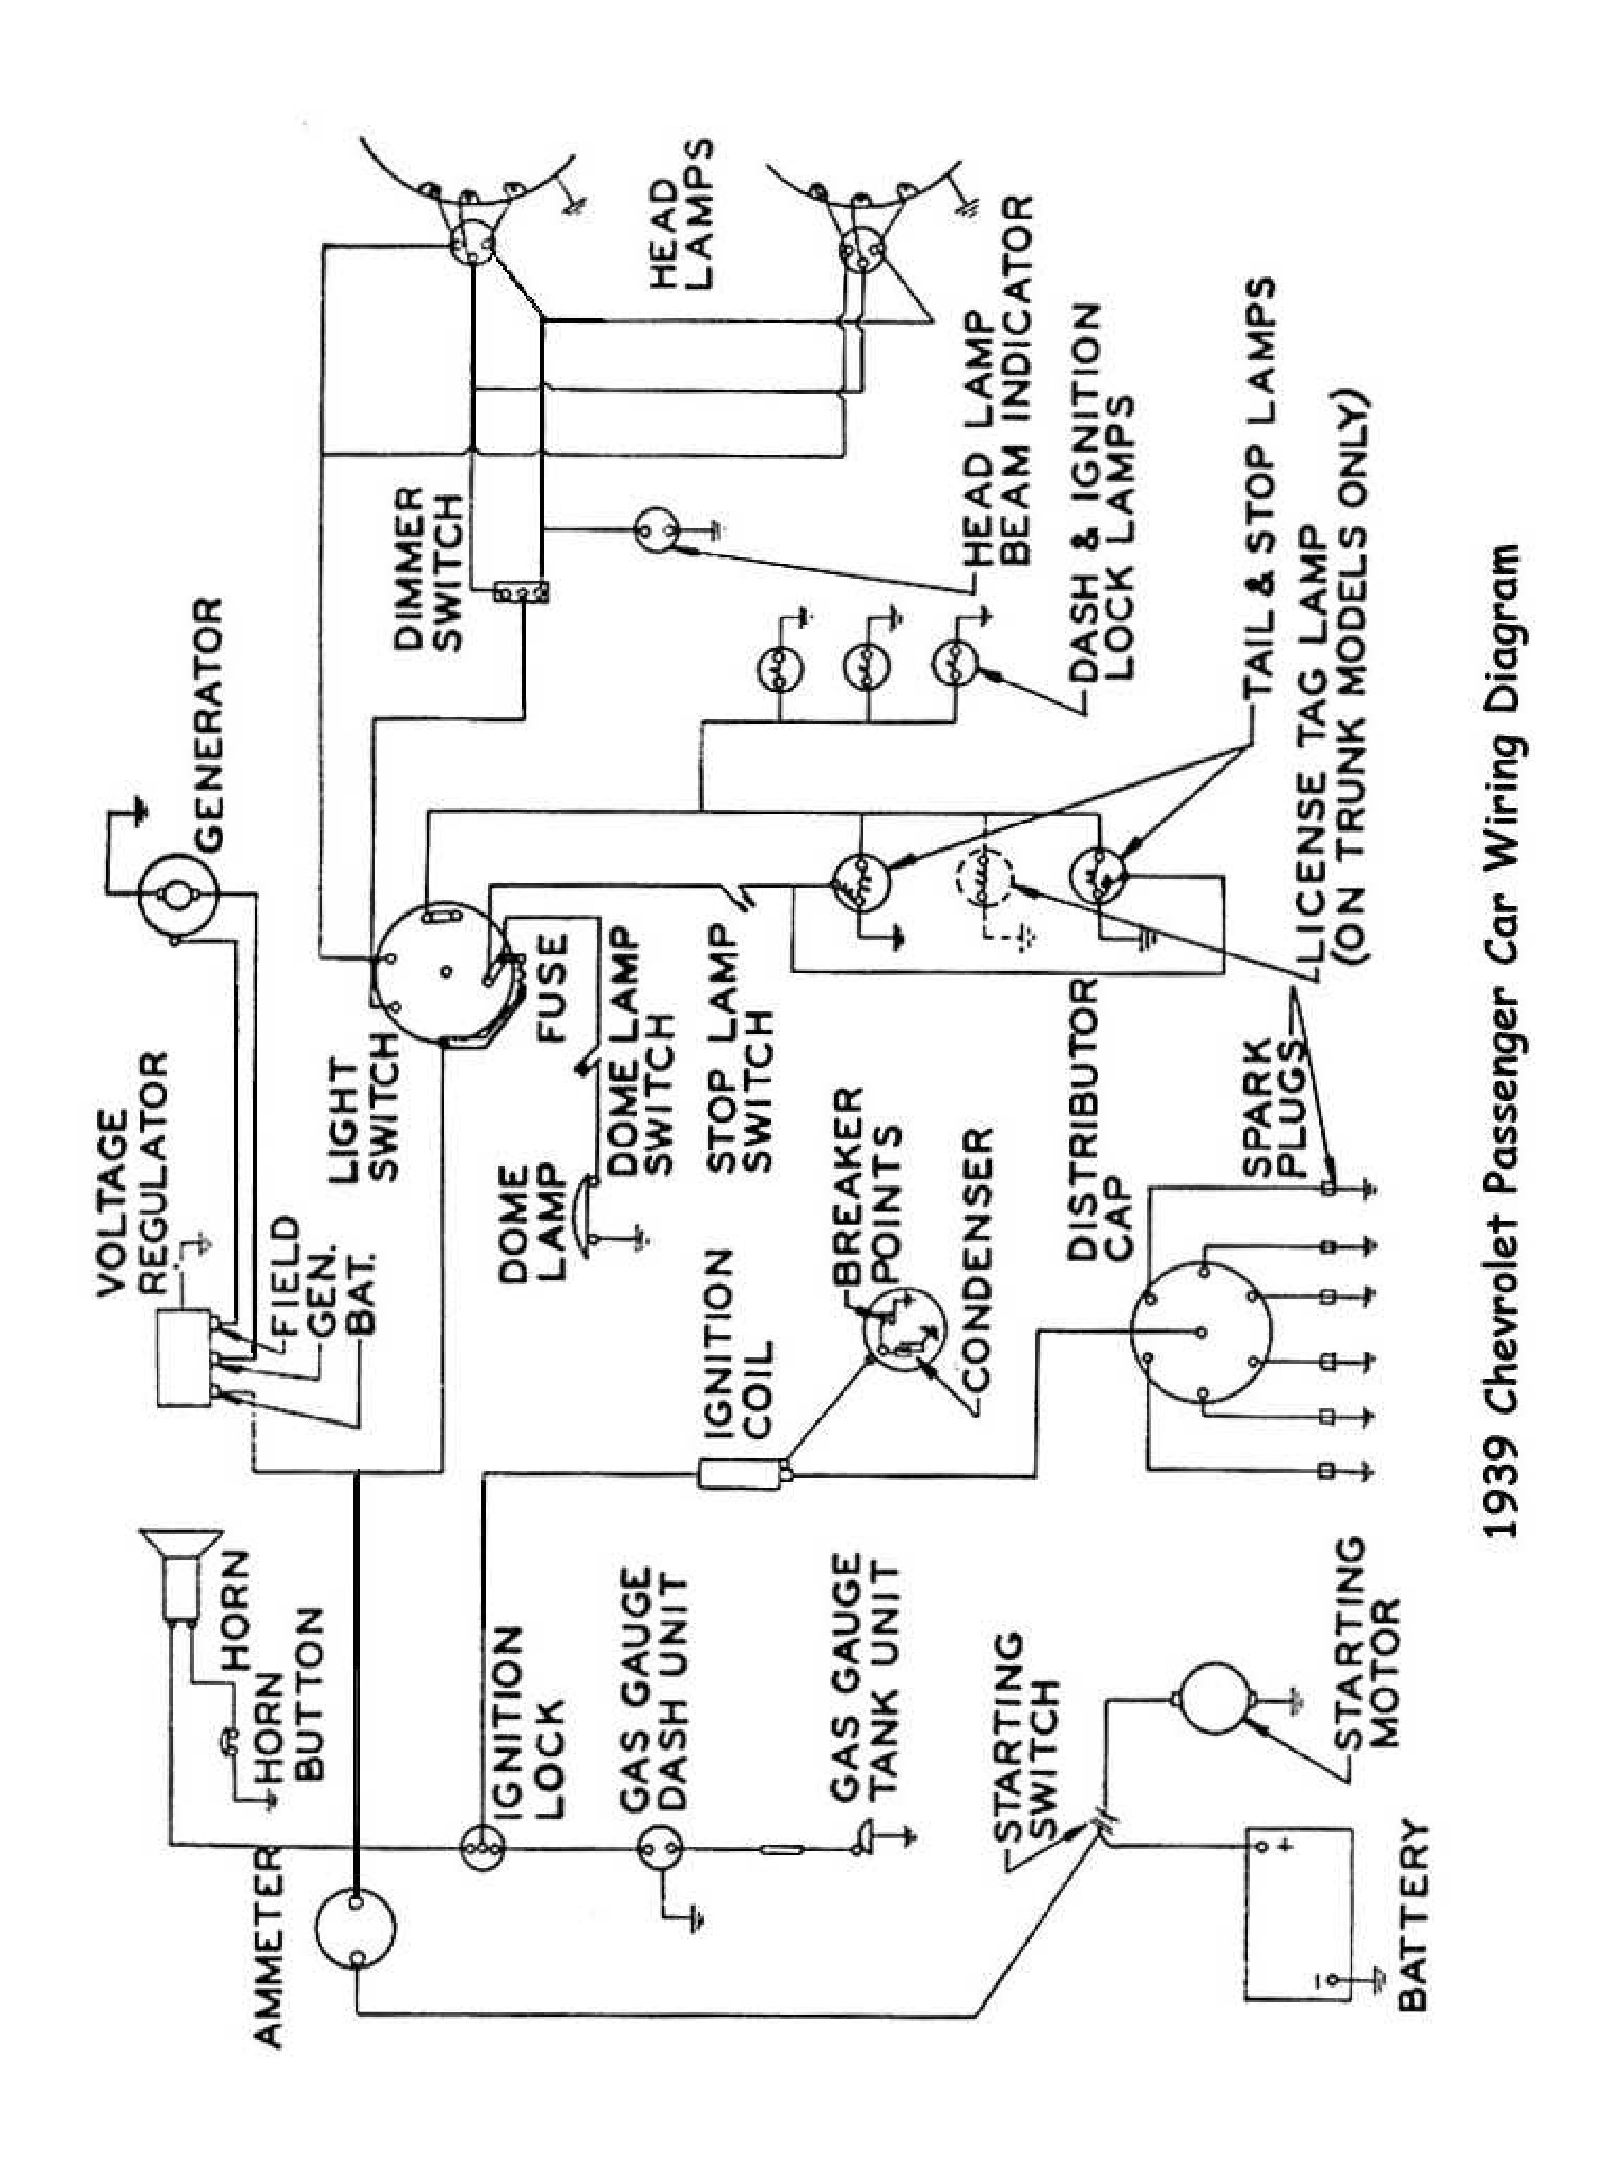 1941 Chrysler Ignition Switch Wiring Reinvent Your Diagram 47 Plymouth Chevy Diagrams Rh Oldcarmanualproject Com